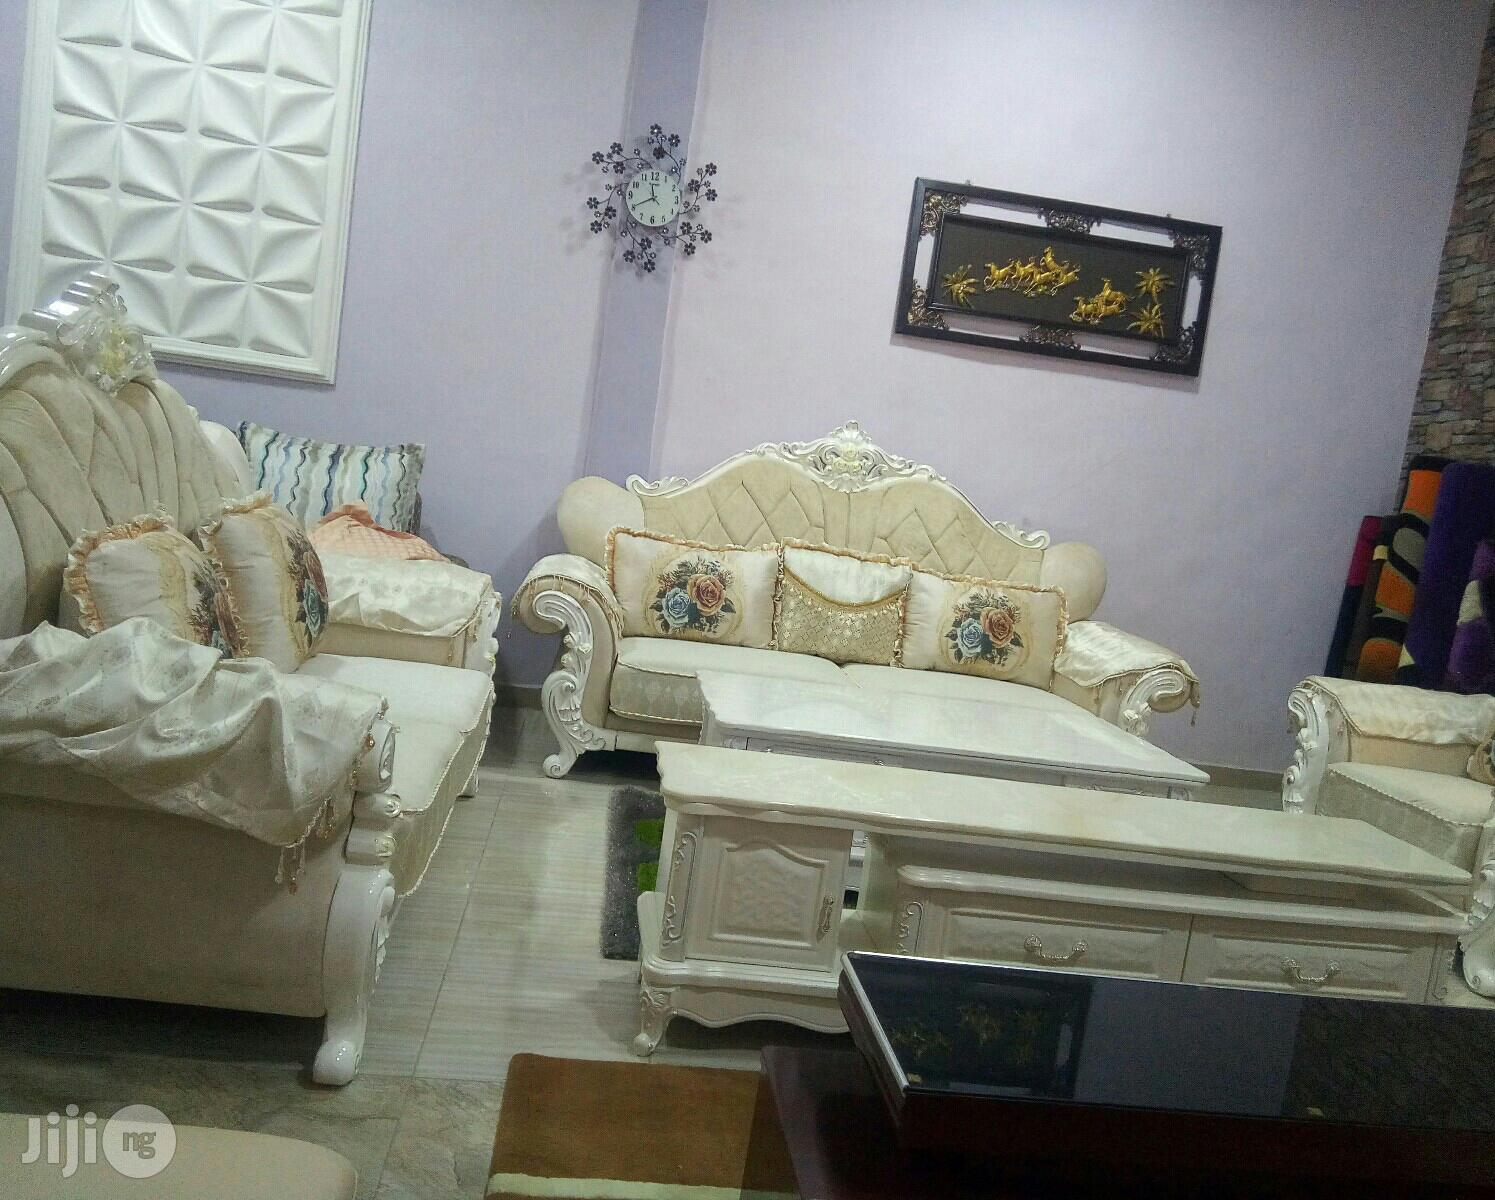 Imported Turkey Sofa Chair | Furniture for sale in Ajah, Lagos State, Nigeria